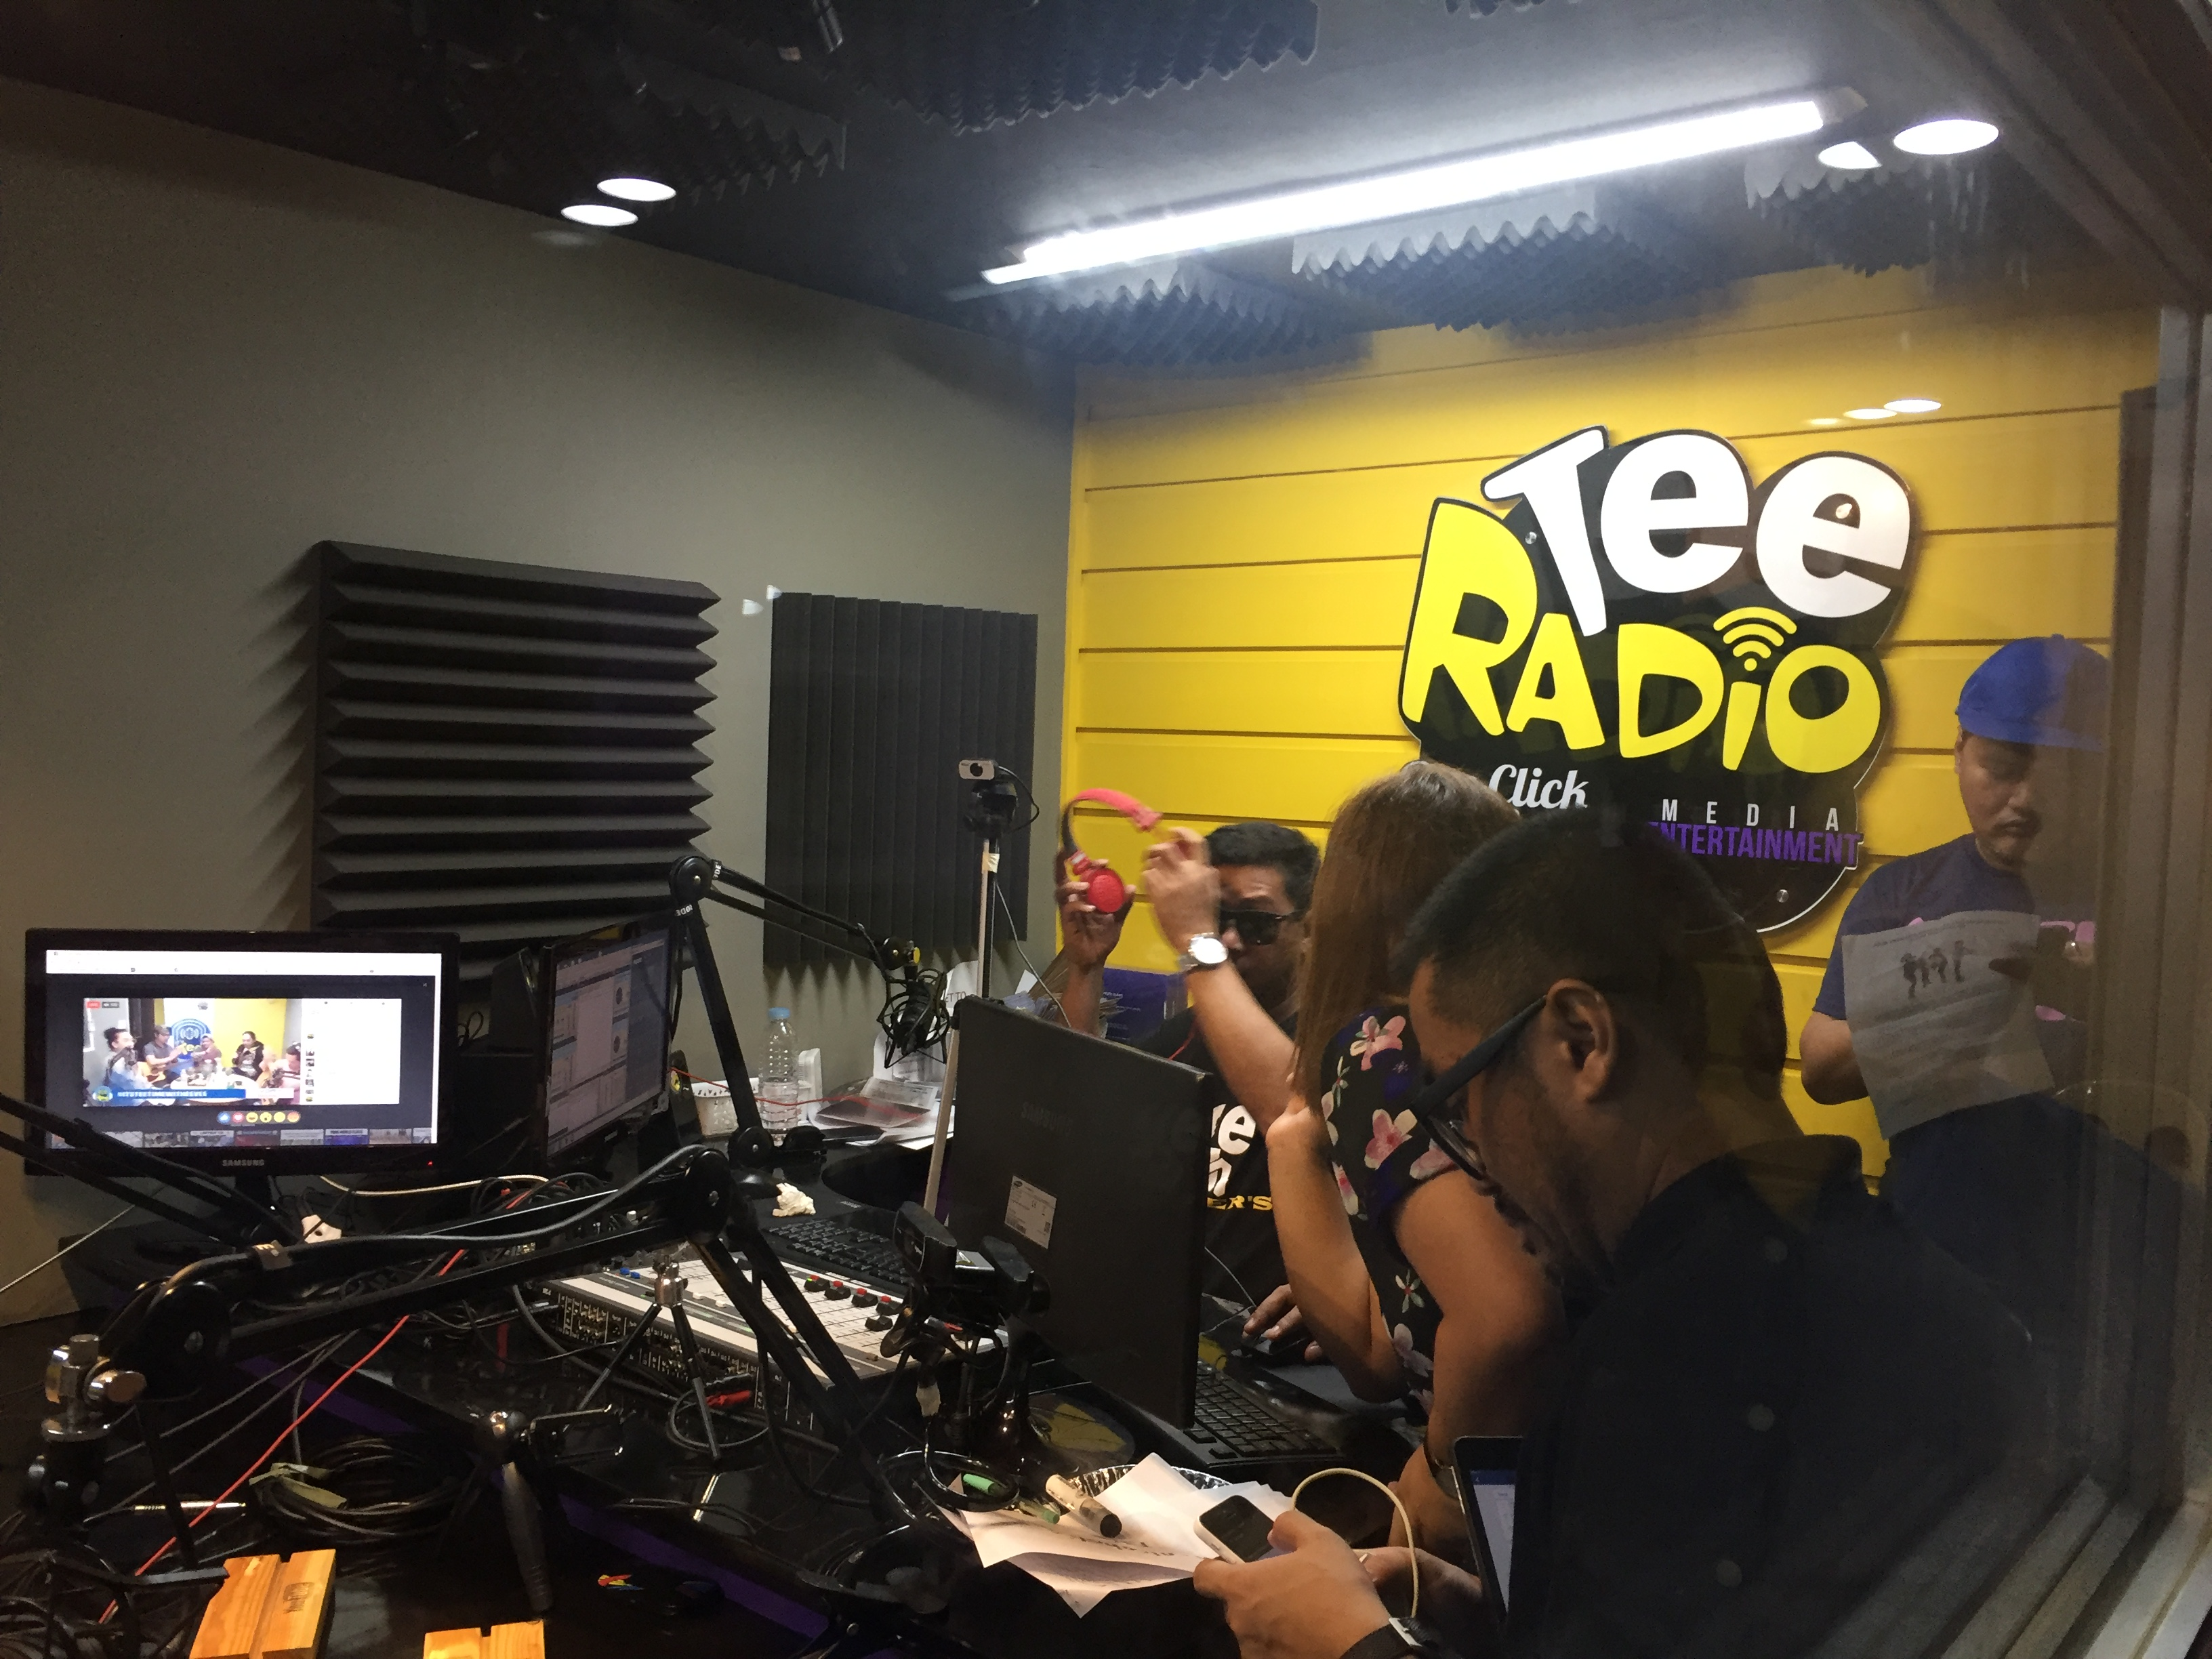 Ivory Record Teams Up With Tee Radio